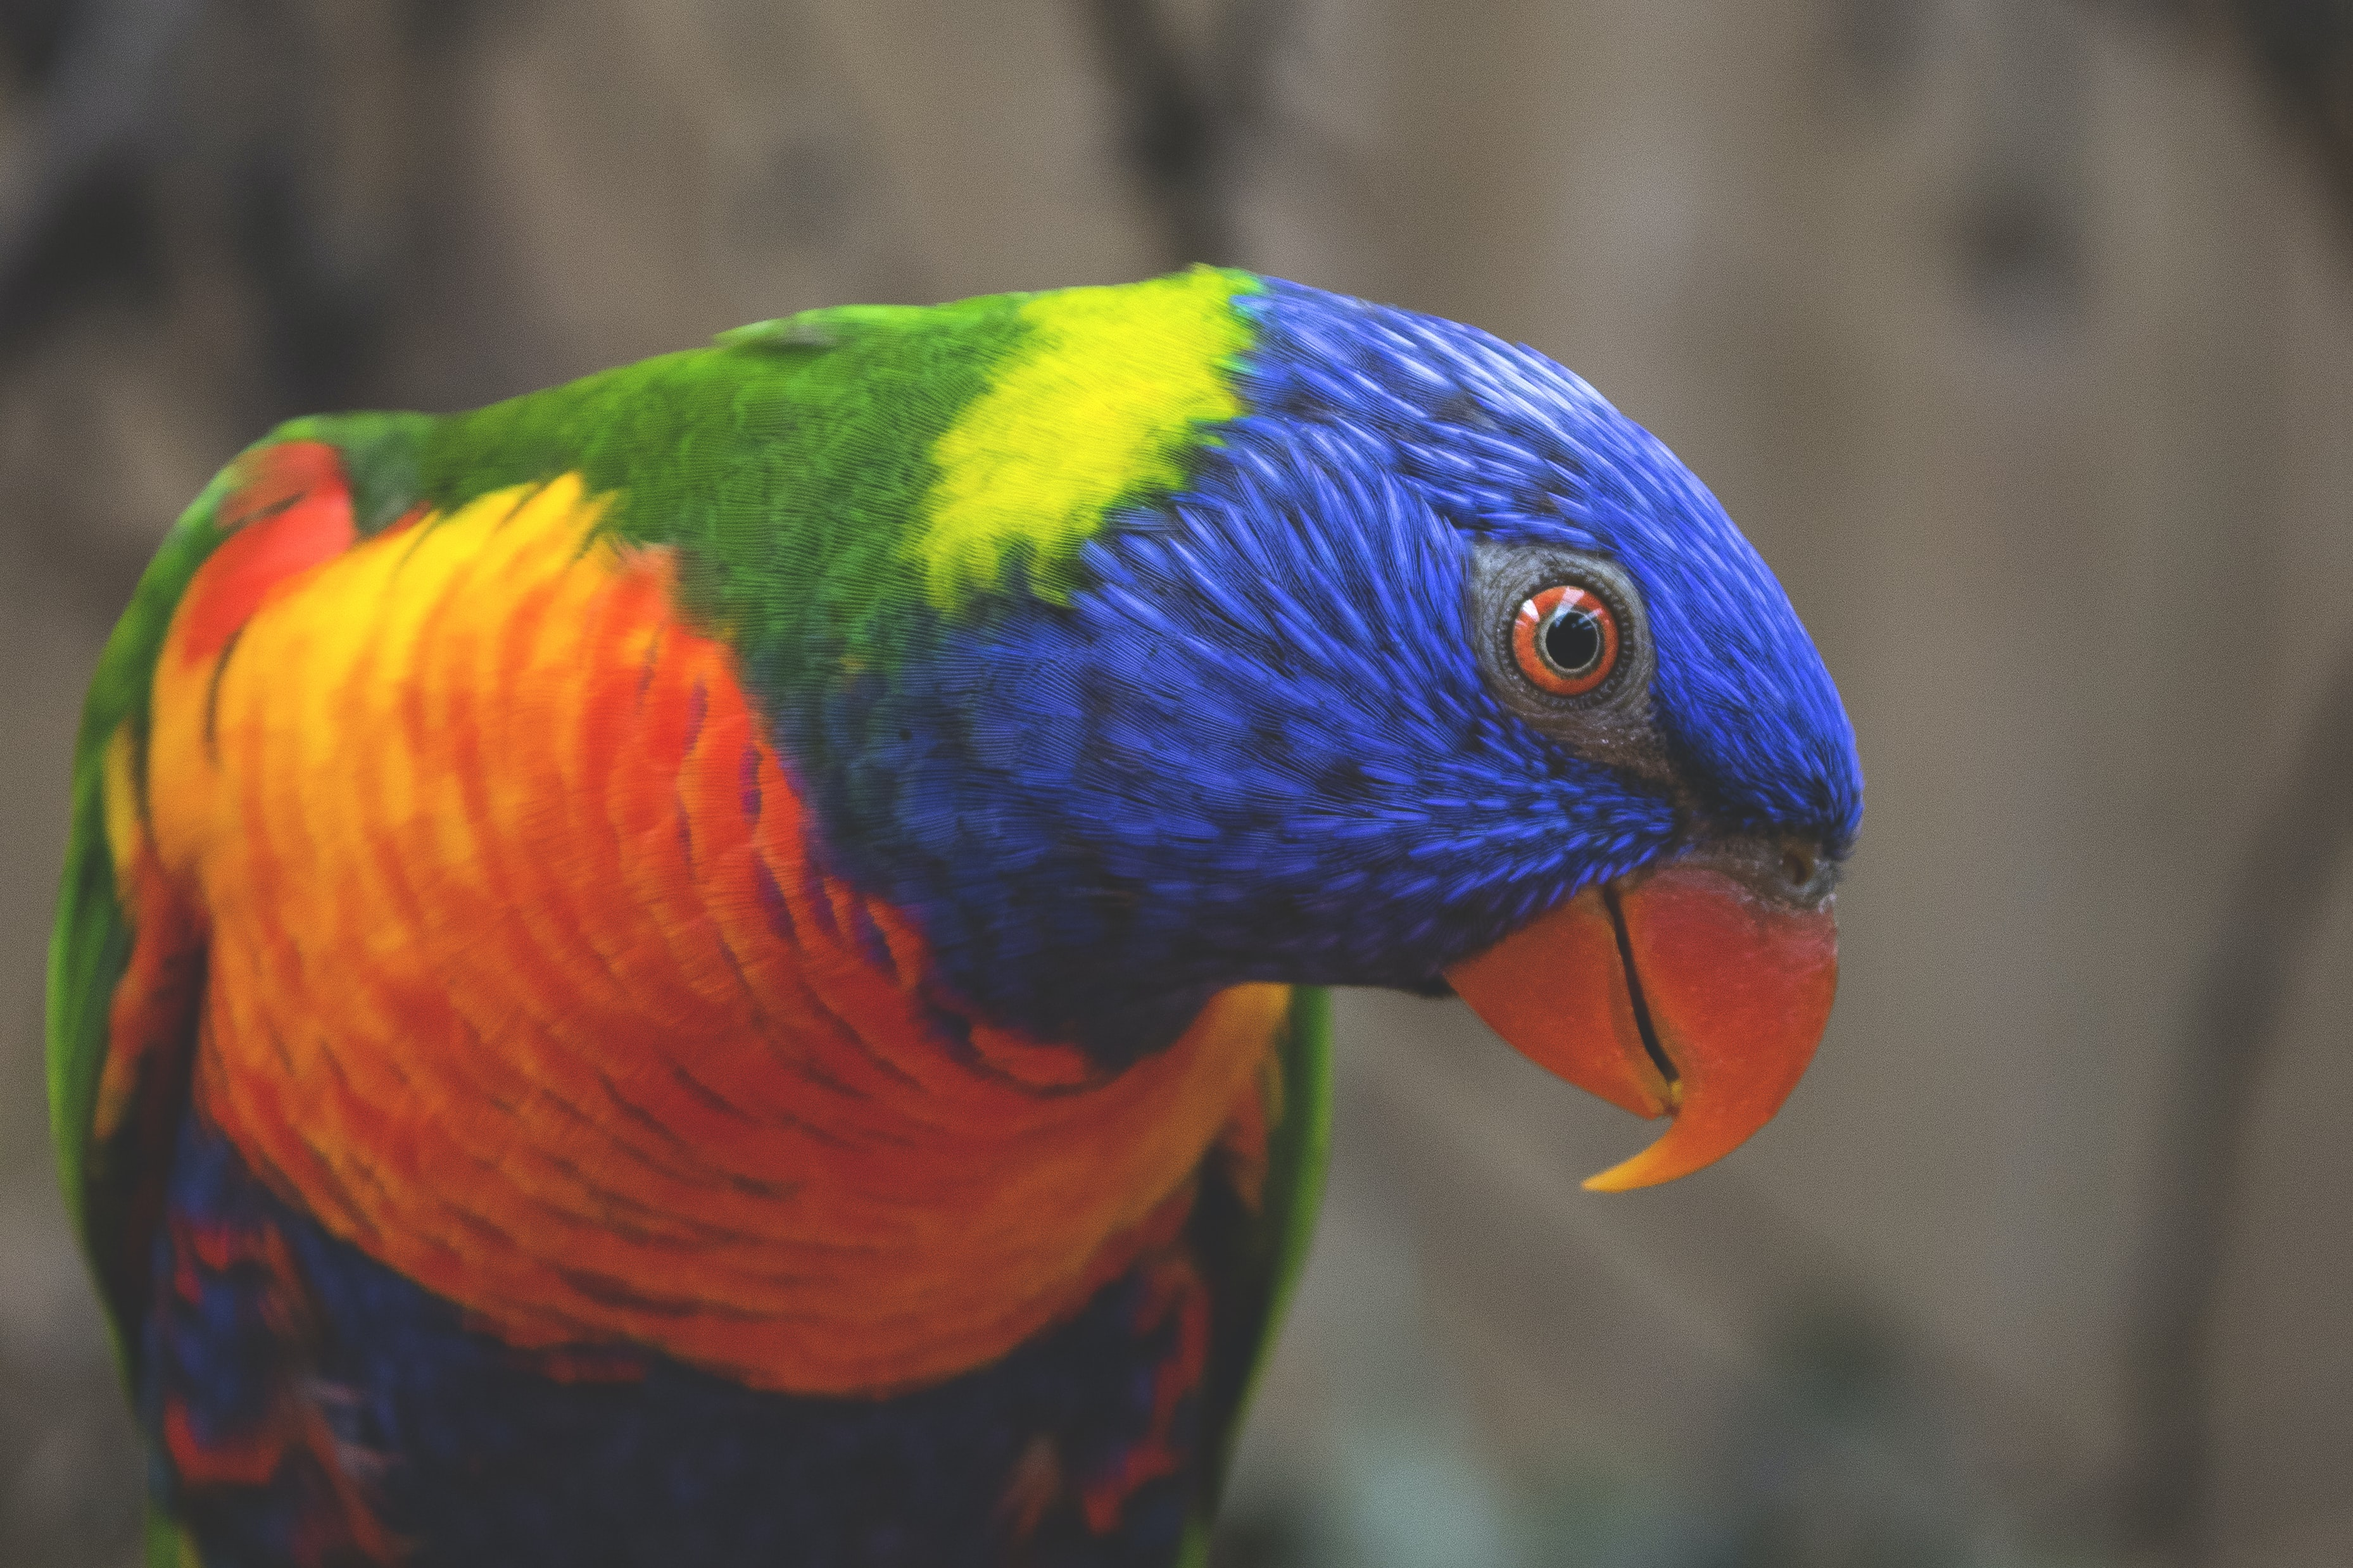 Multicolored parrot tilting its head